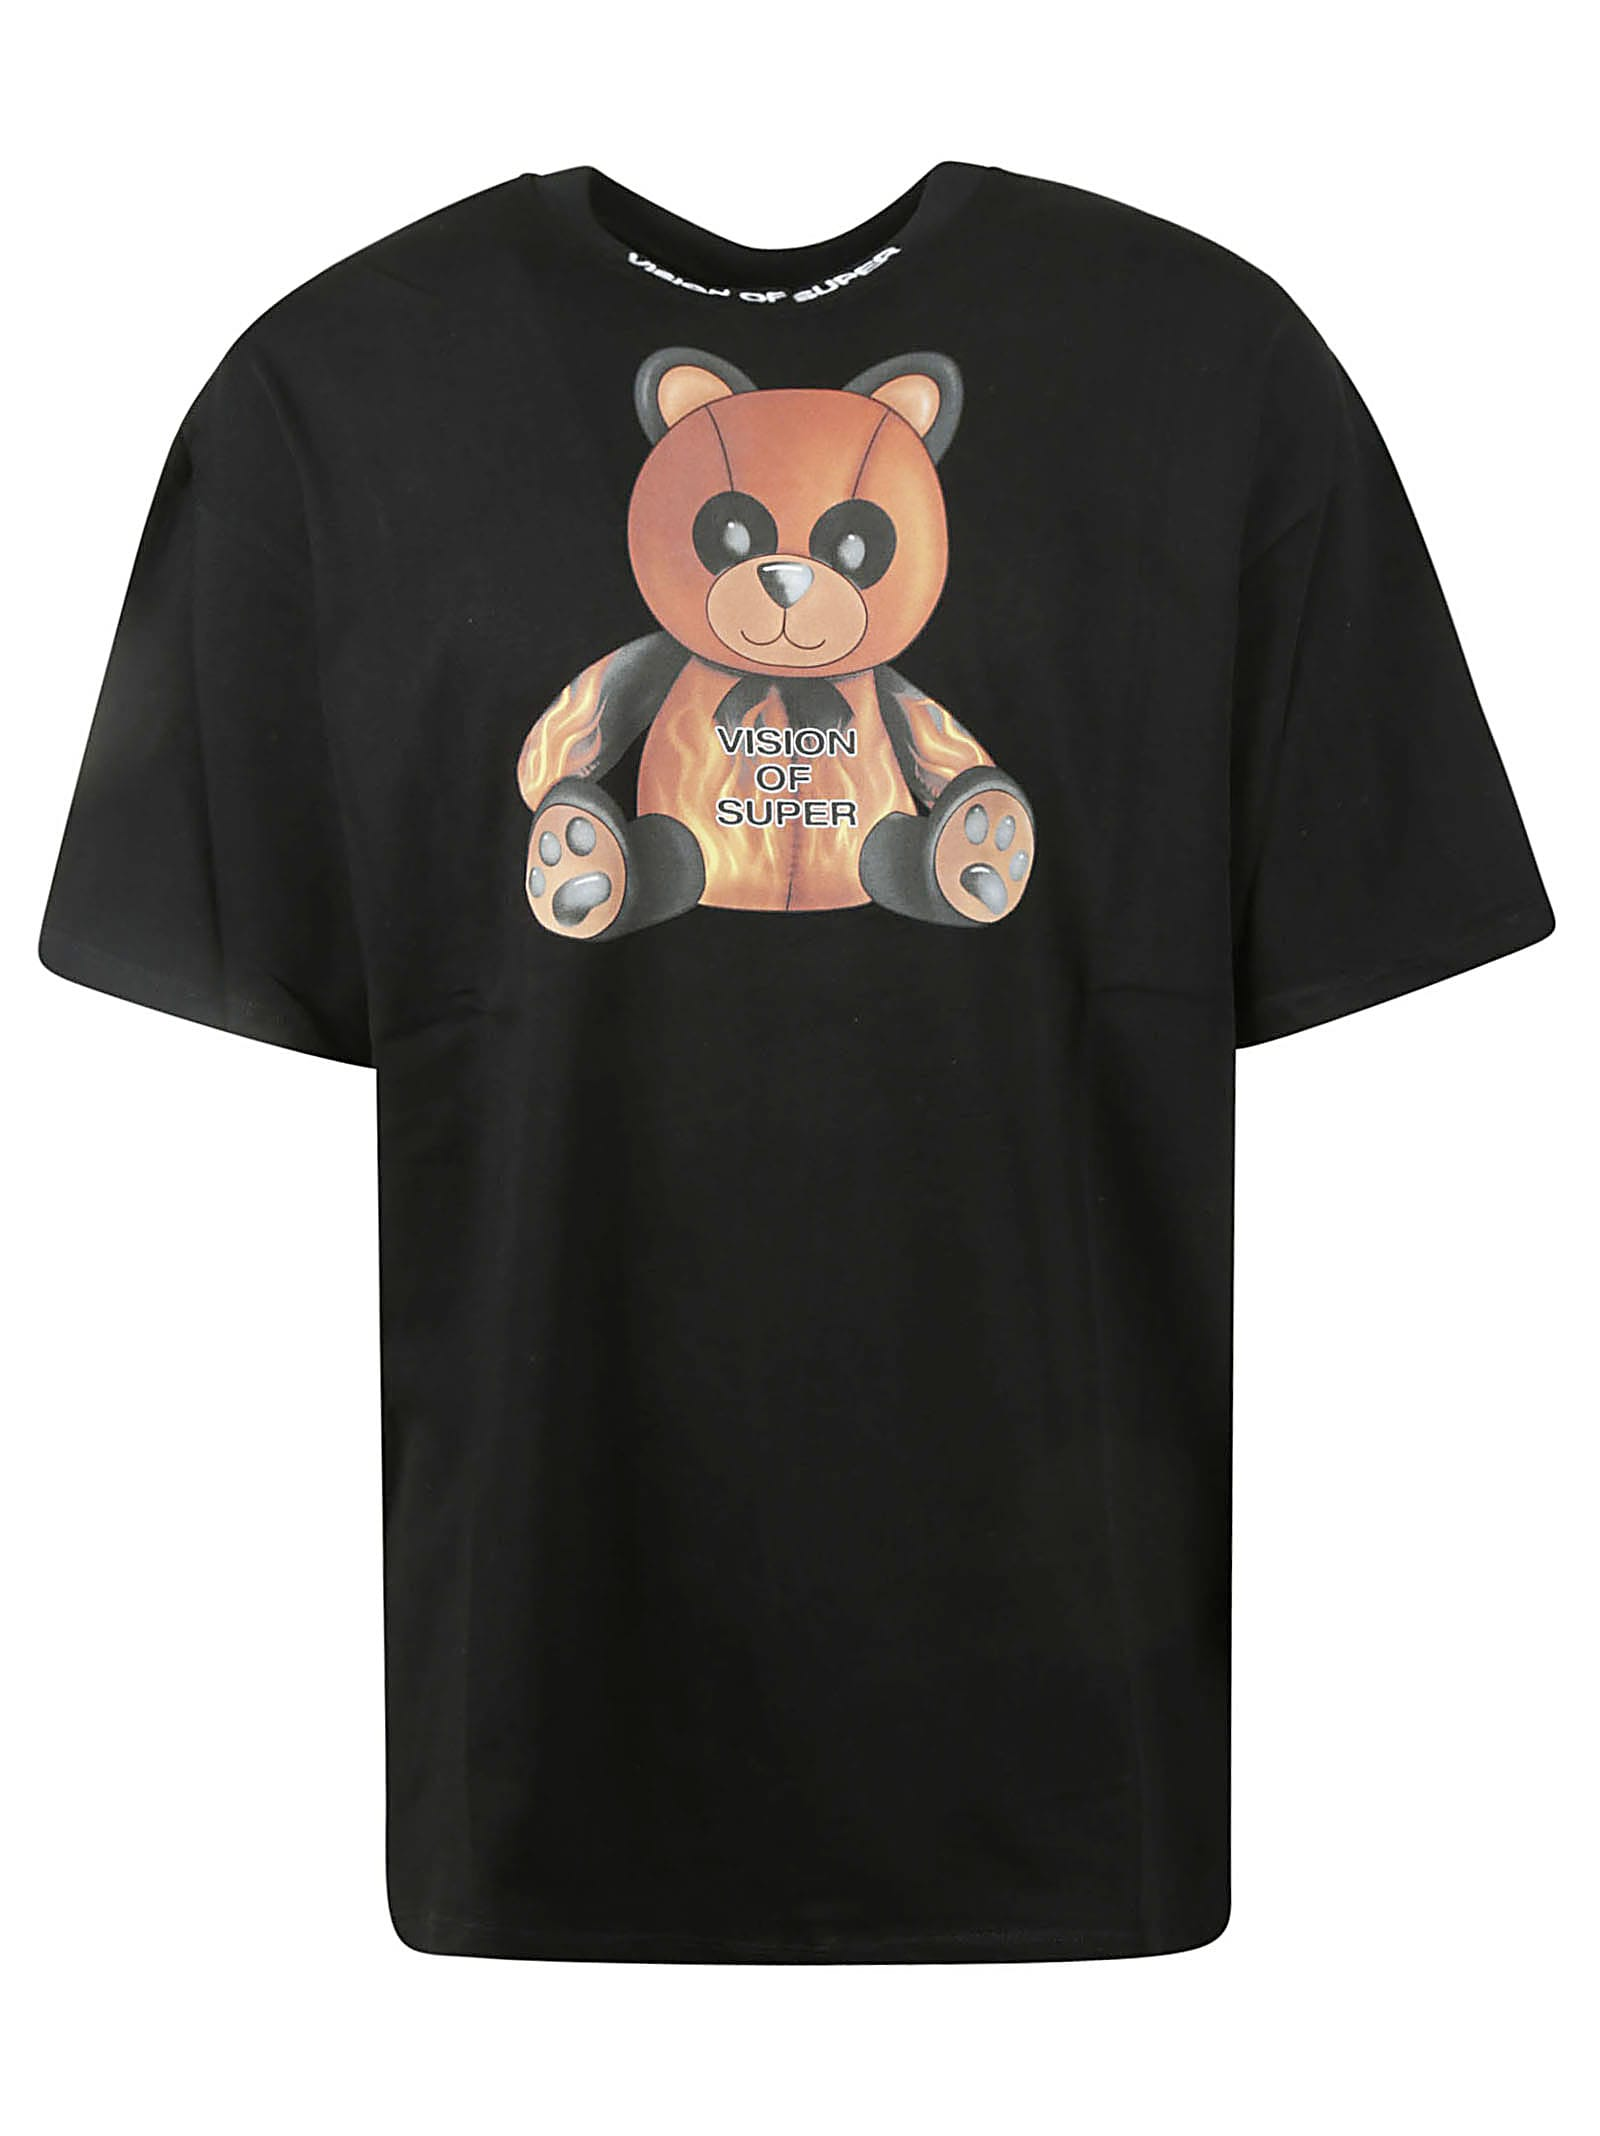 Vision Of Super Pandy T-shirt In Black